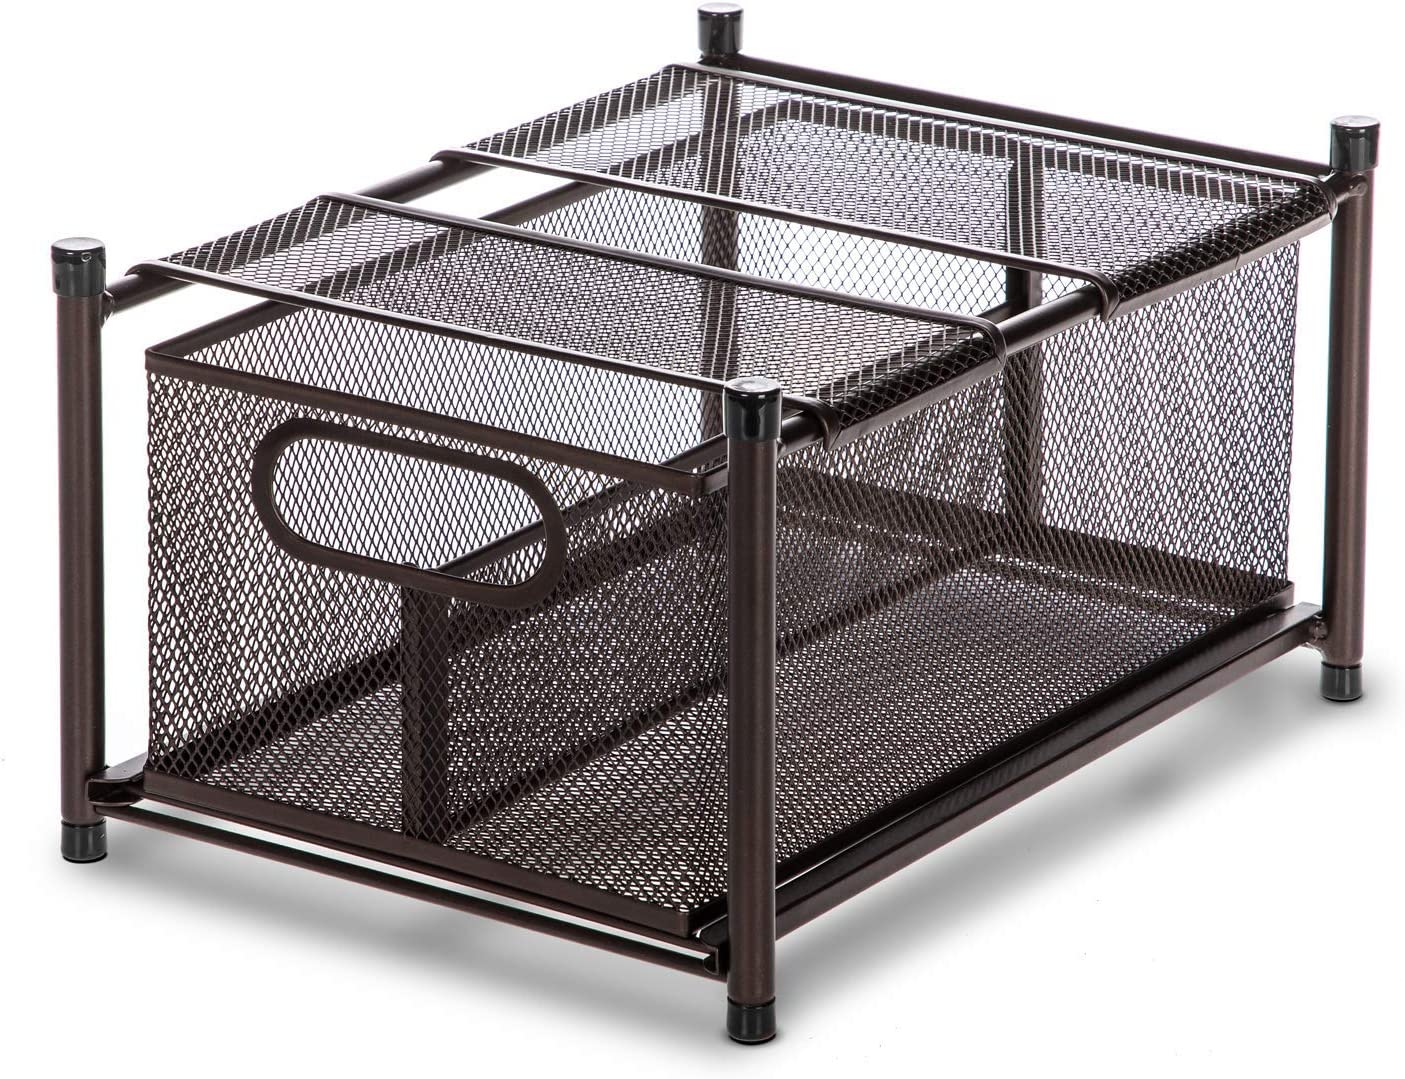 Home Zone Living Tabletop Kitchen Basket Organizer, Pull Out Shelf, Vertical Storage (Oil-Rubbed Bronze)